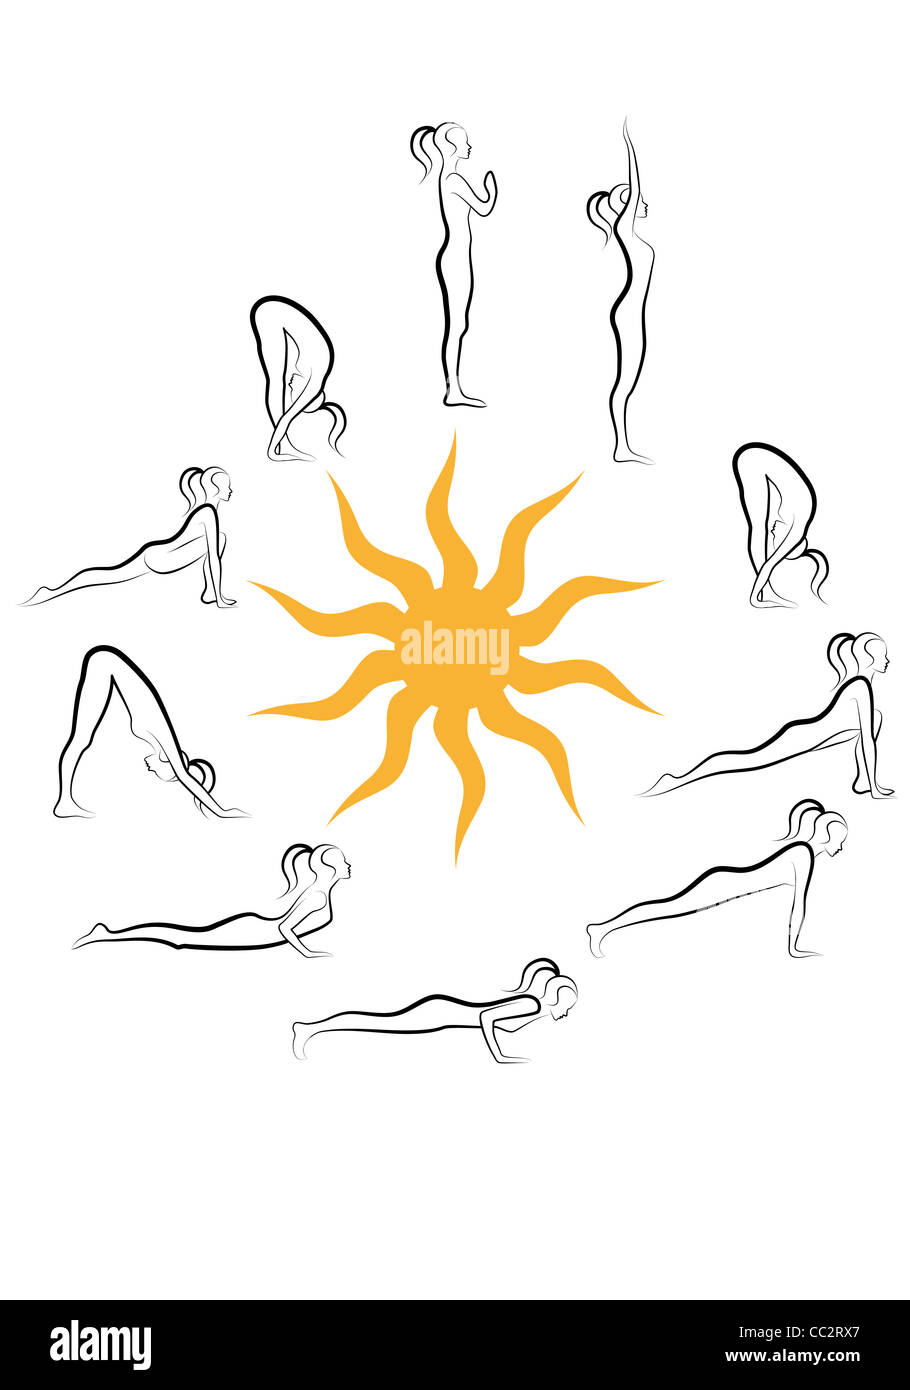 yoga sun salutation excersices - Stock Image